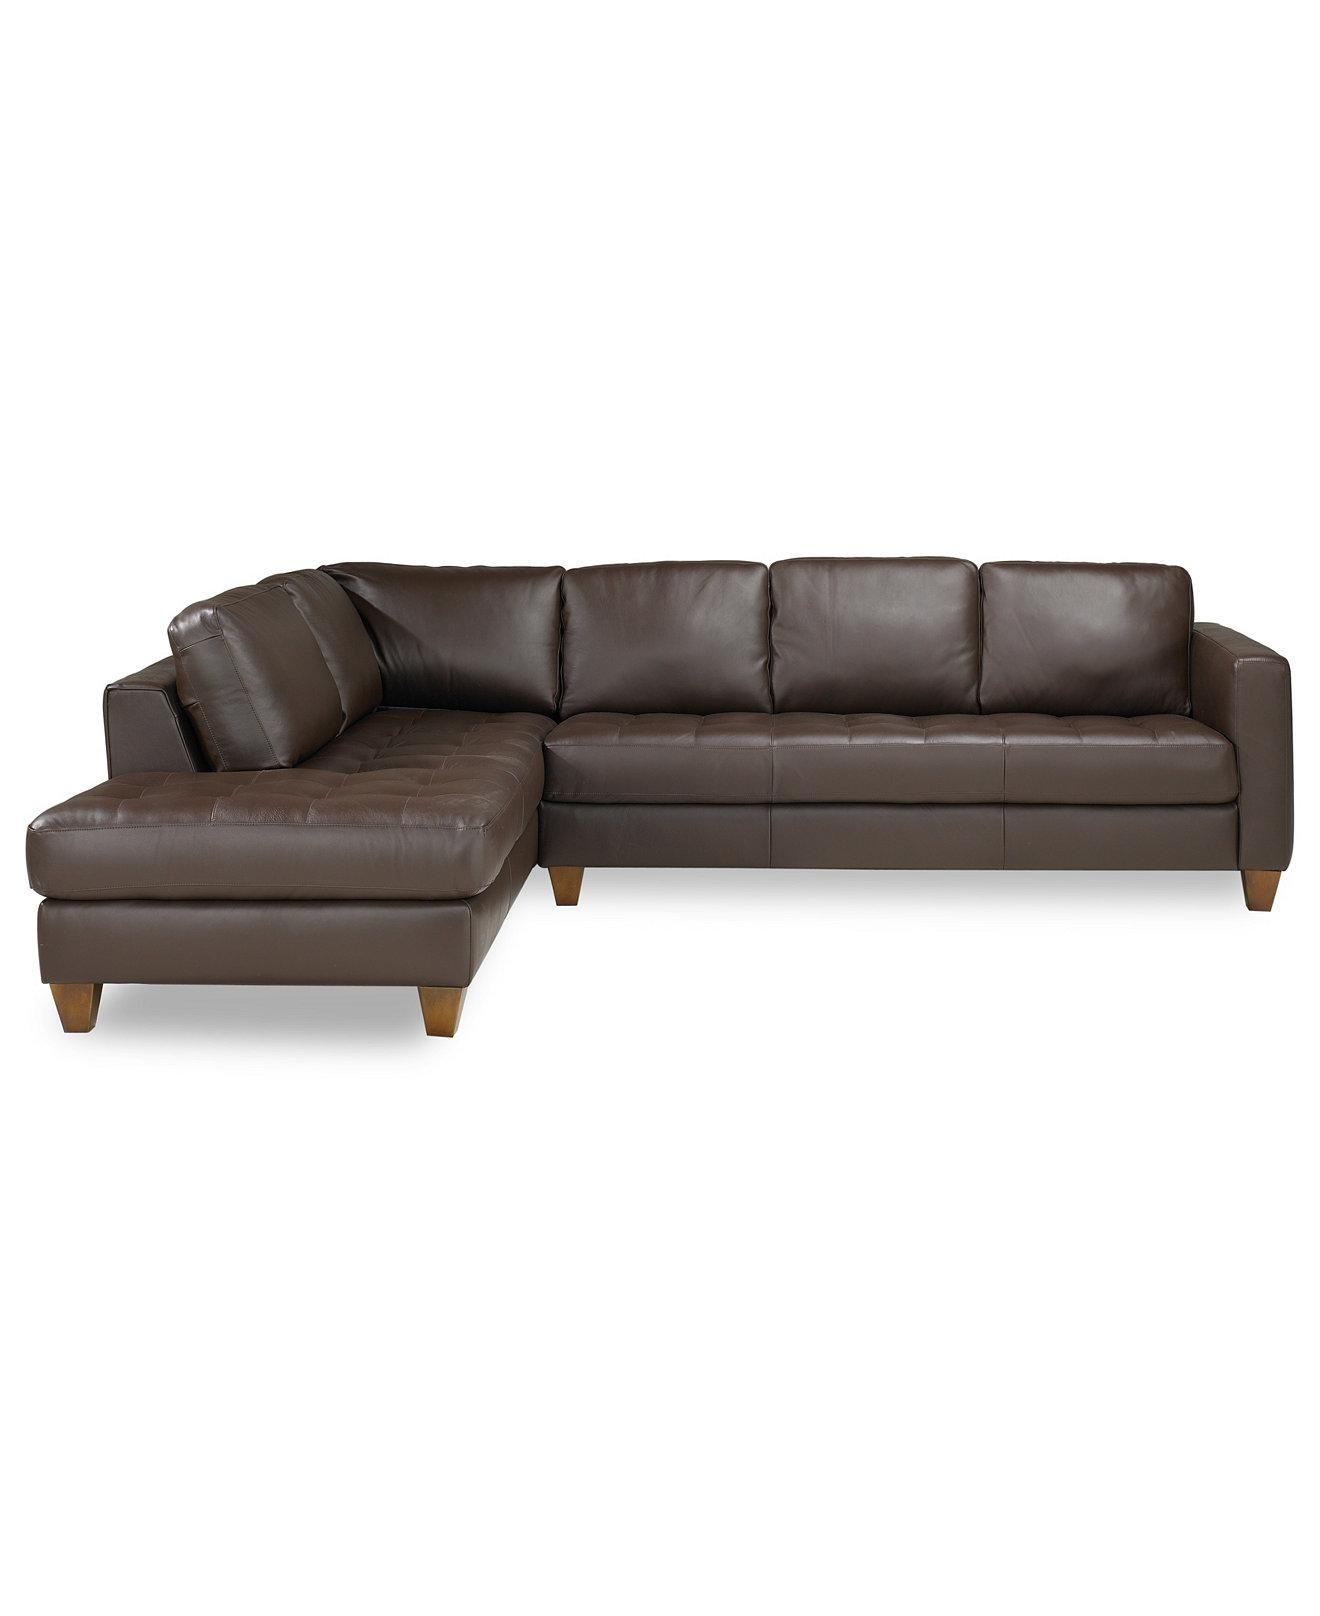 Macys Sofa: 20 Best Macys Leather Sectional Sofa